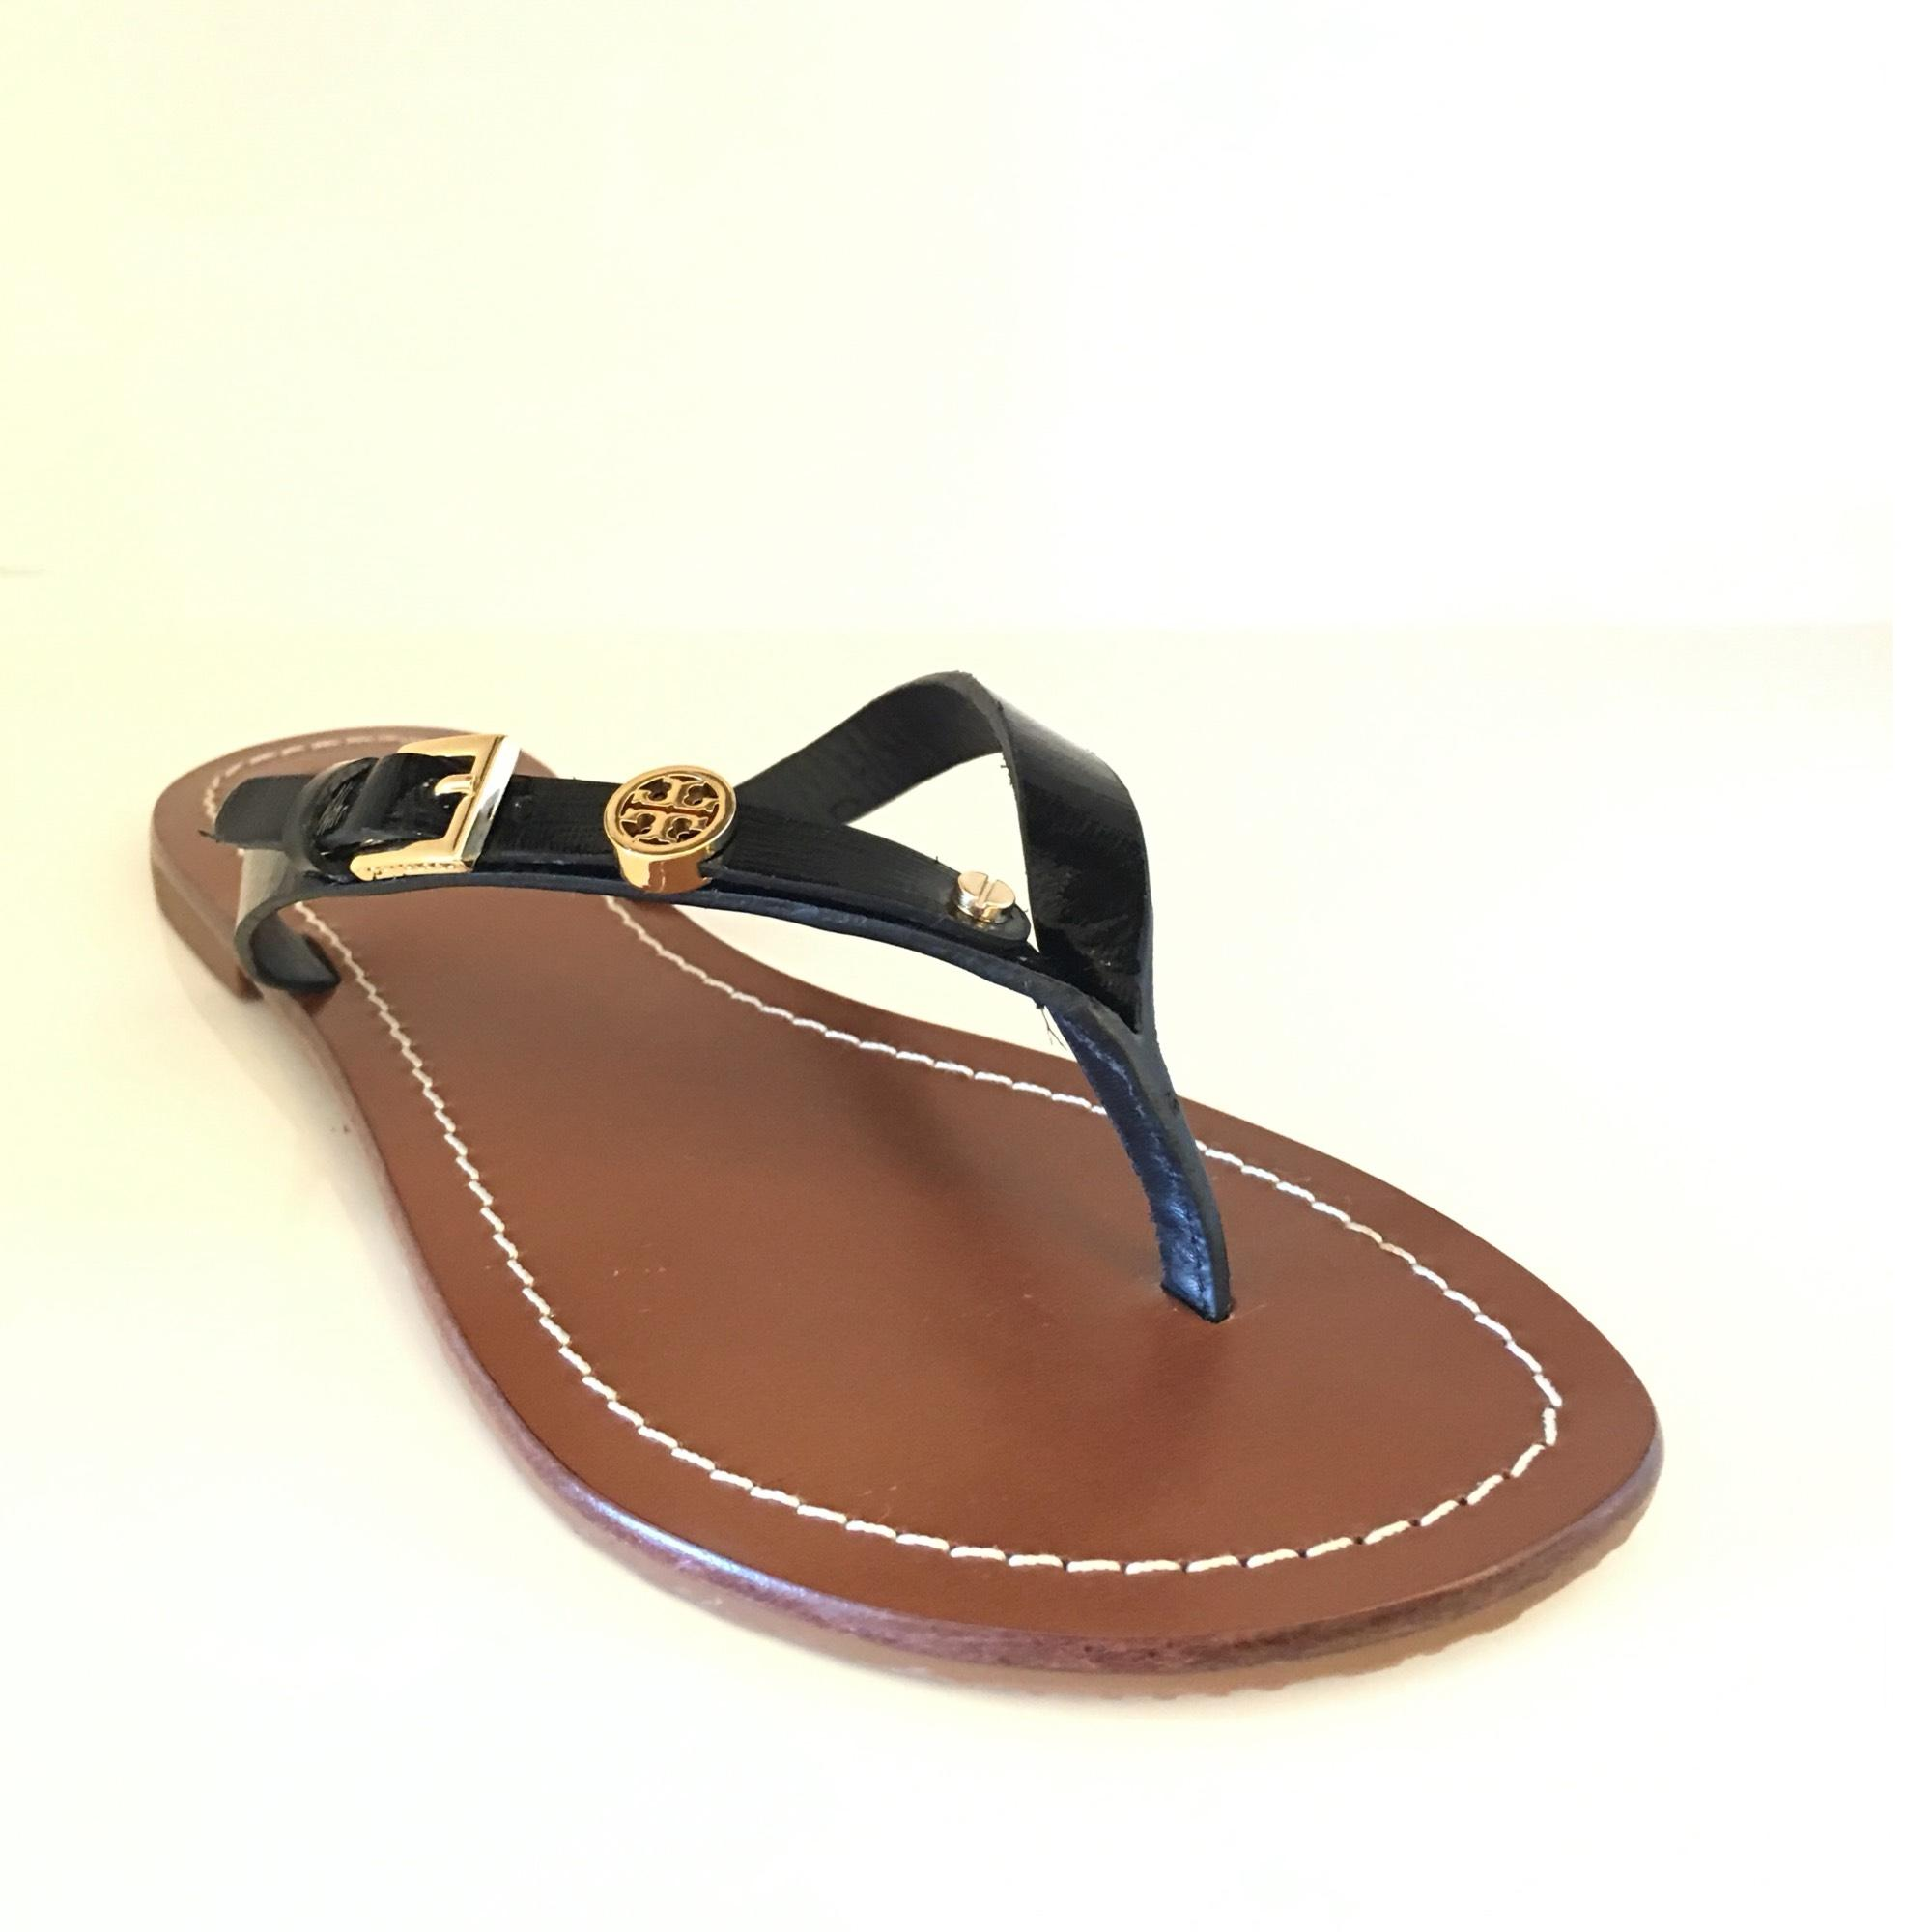 0d164ab3f00eb3 ... wholesale tory burch black monogram flat thong sandals d95b3 f880e